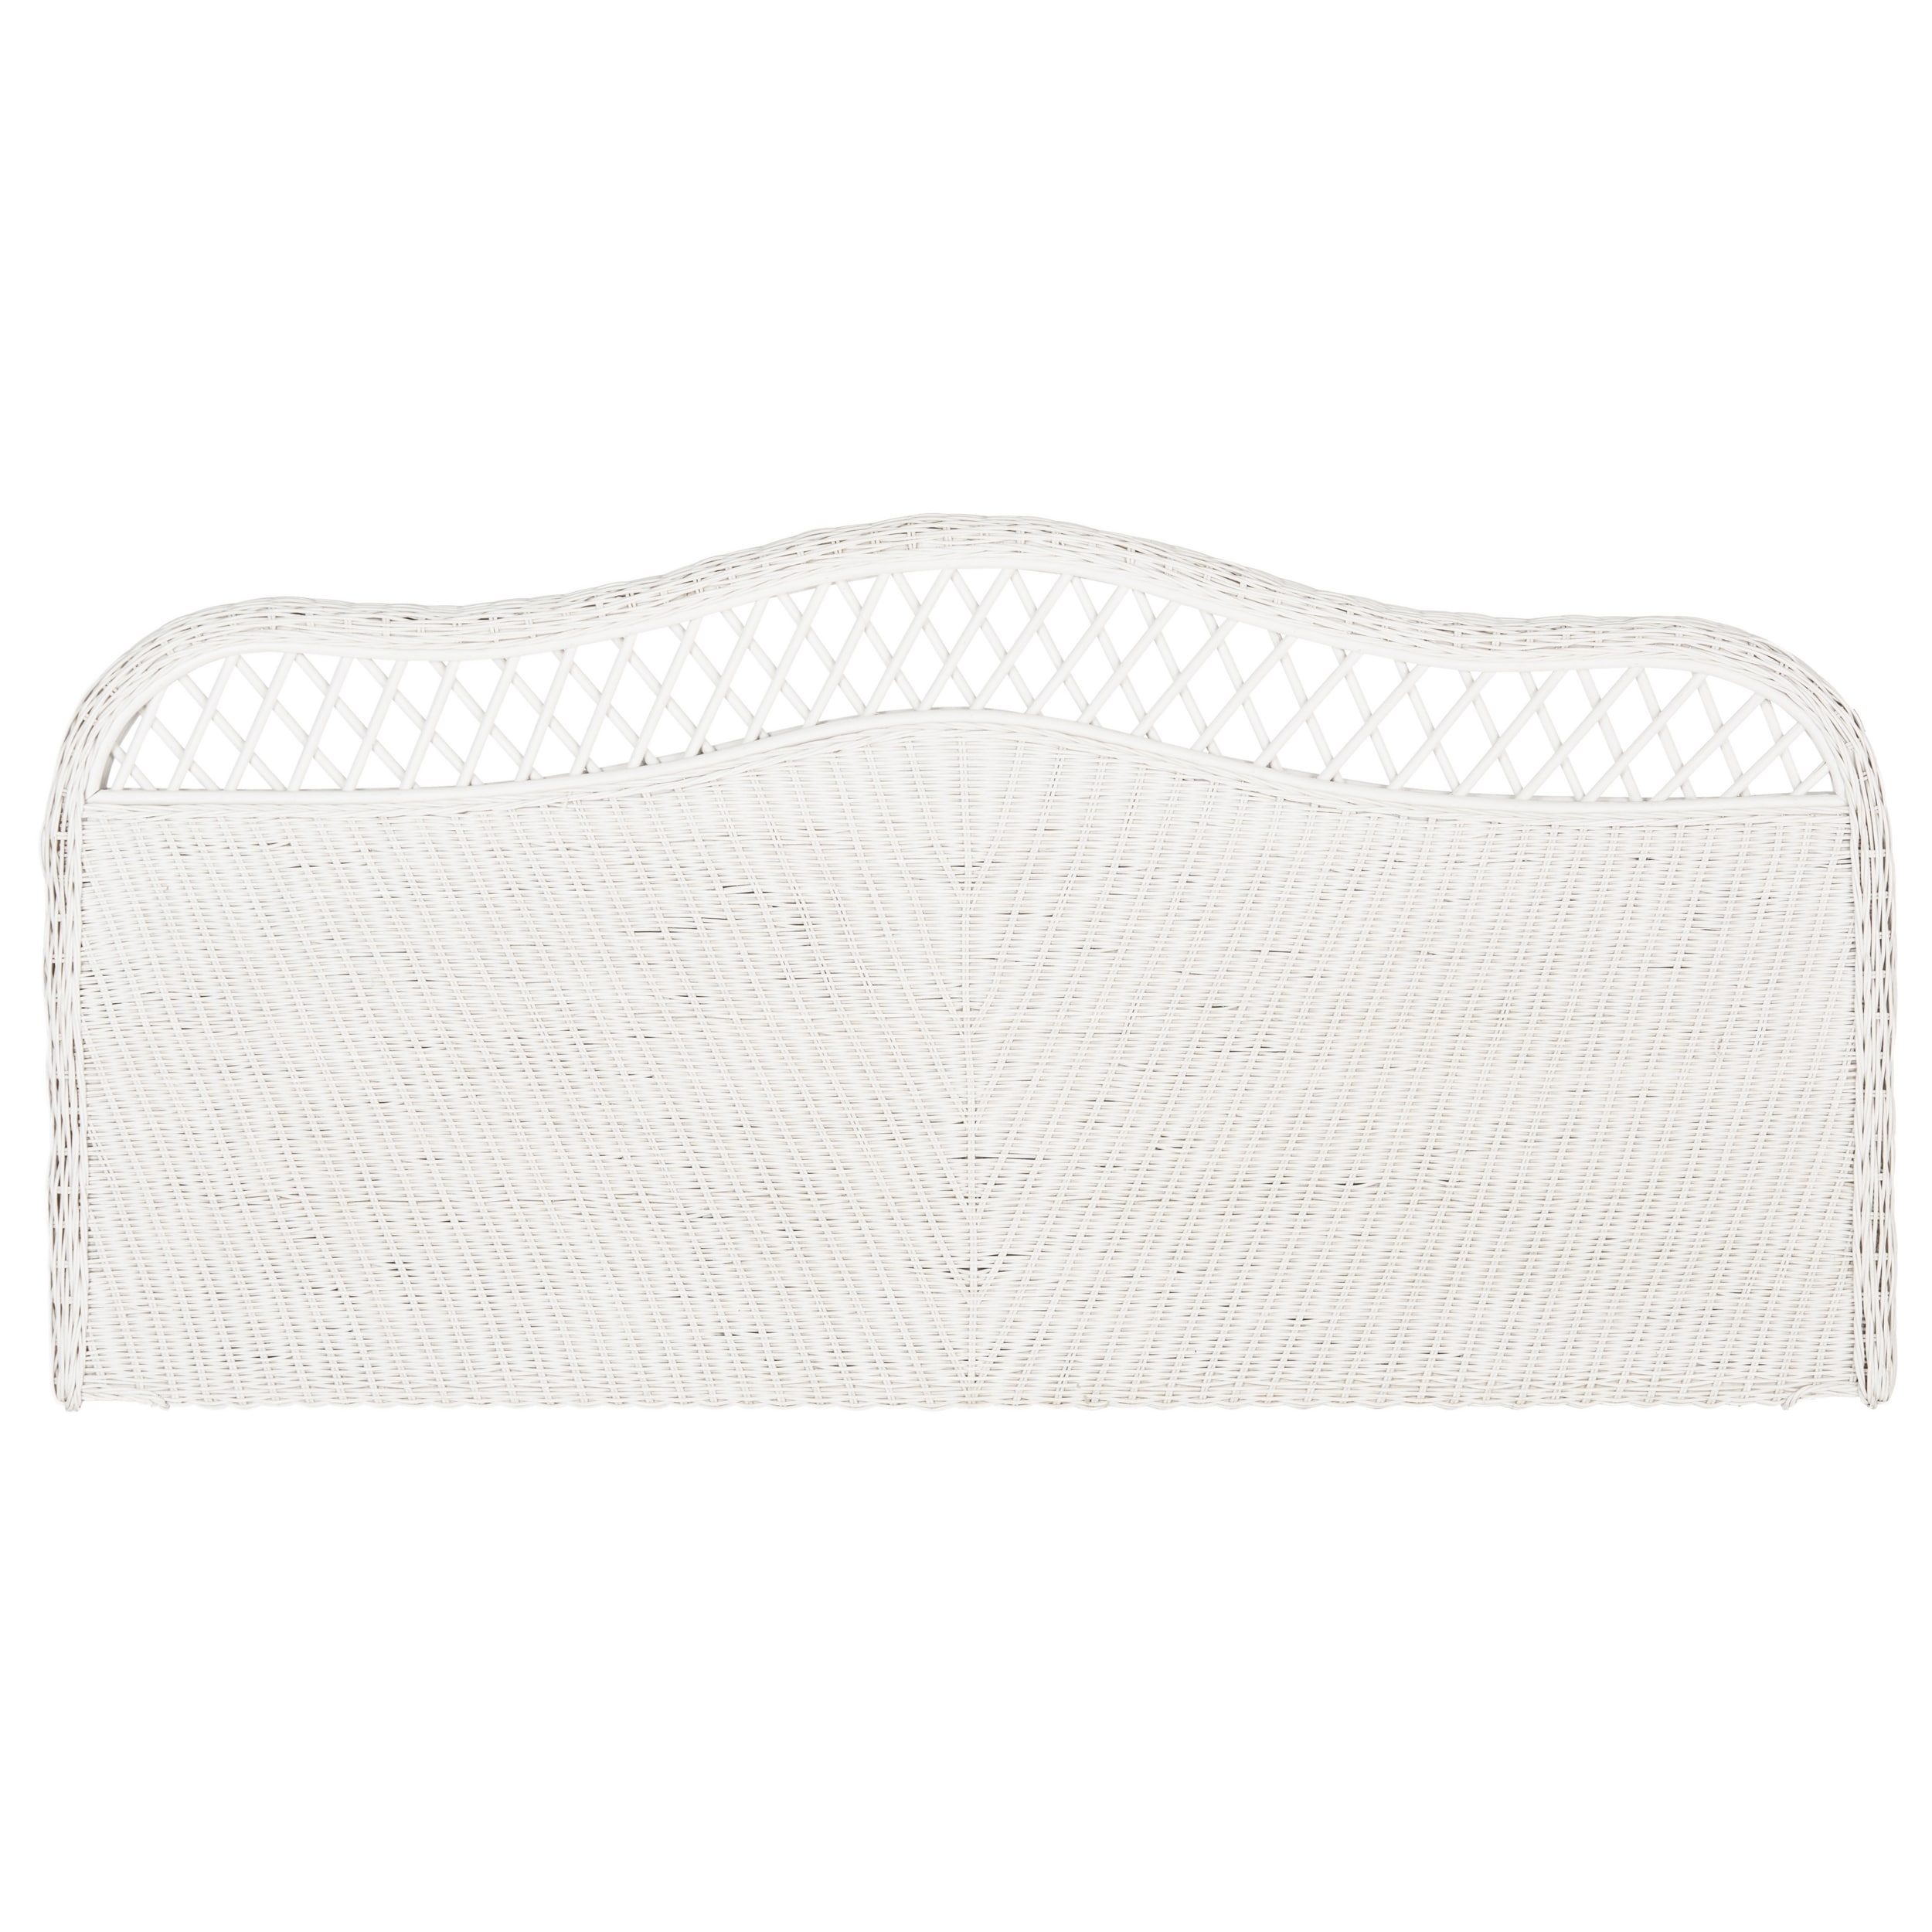 Full Safavieh Sephina White Rattan Headboard